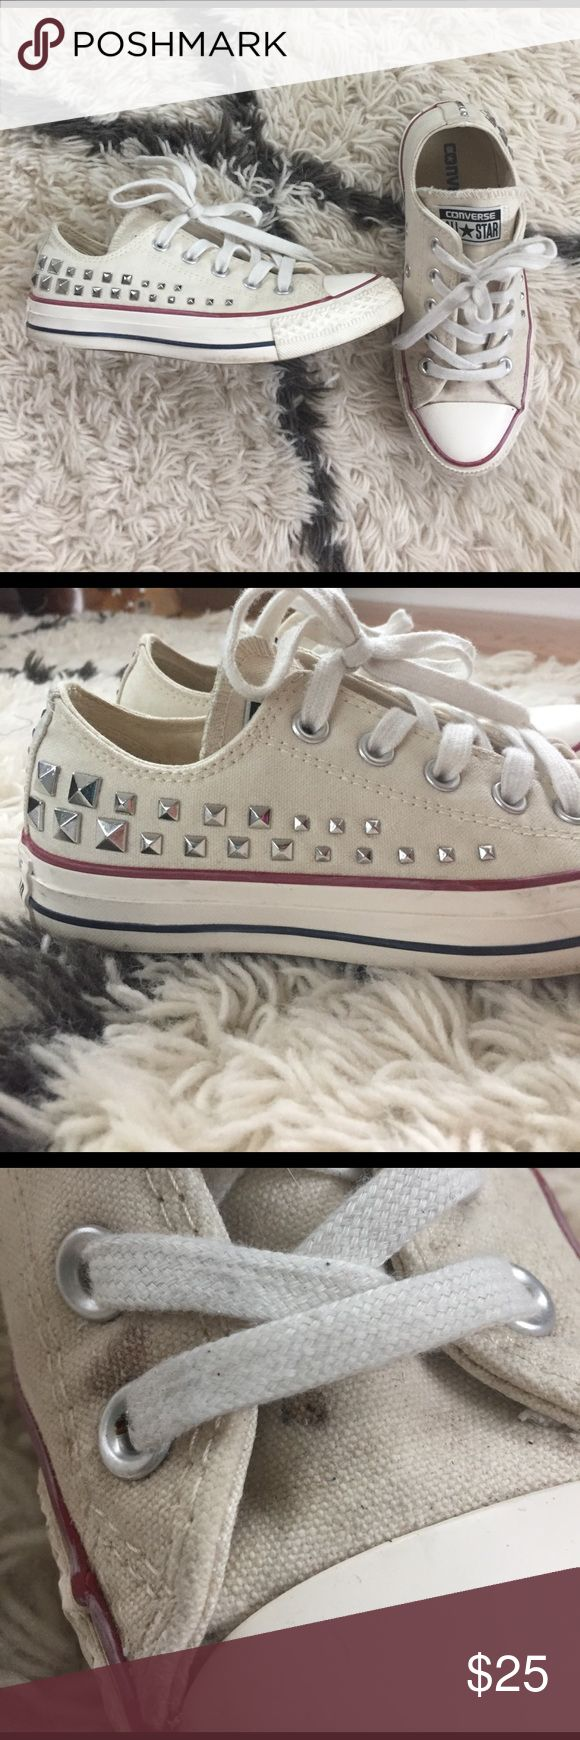 Studded converse Light cream colored converse low tops with silver studs on the sides, size 5 but fit more like a 5.5/6, worn just a few times, two tiny spots on the left shoe (see photo), but would probably come right out with a bleach pen. Converse Shoes Sneakers